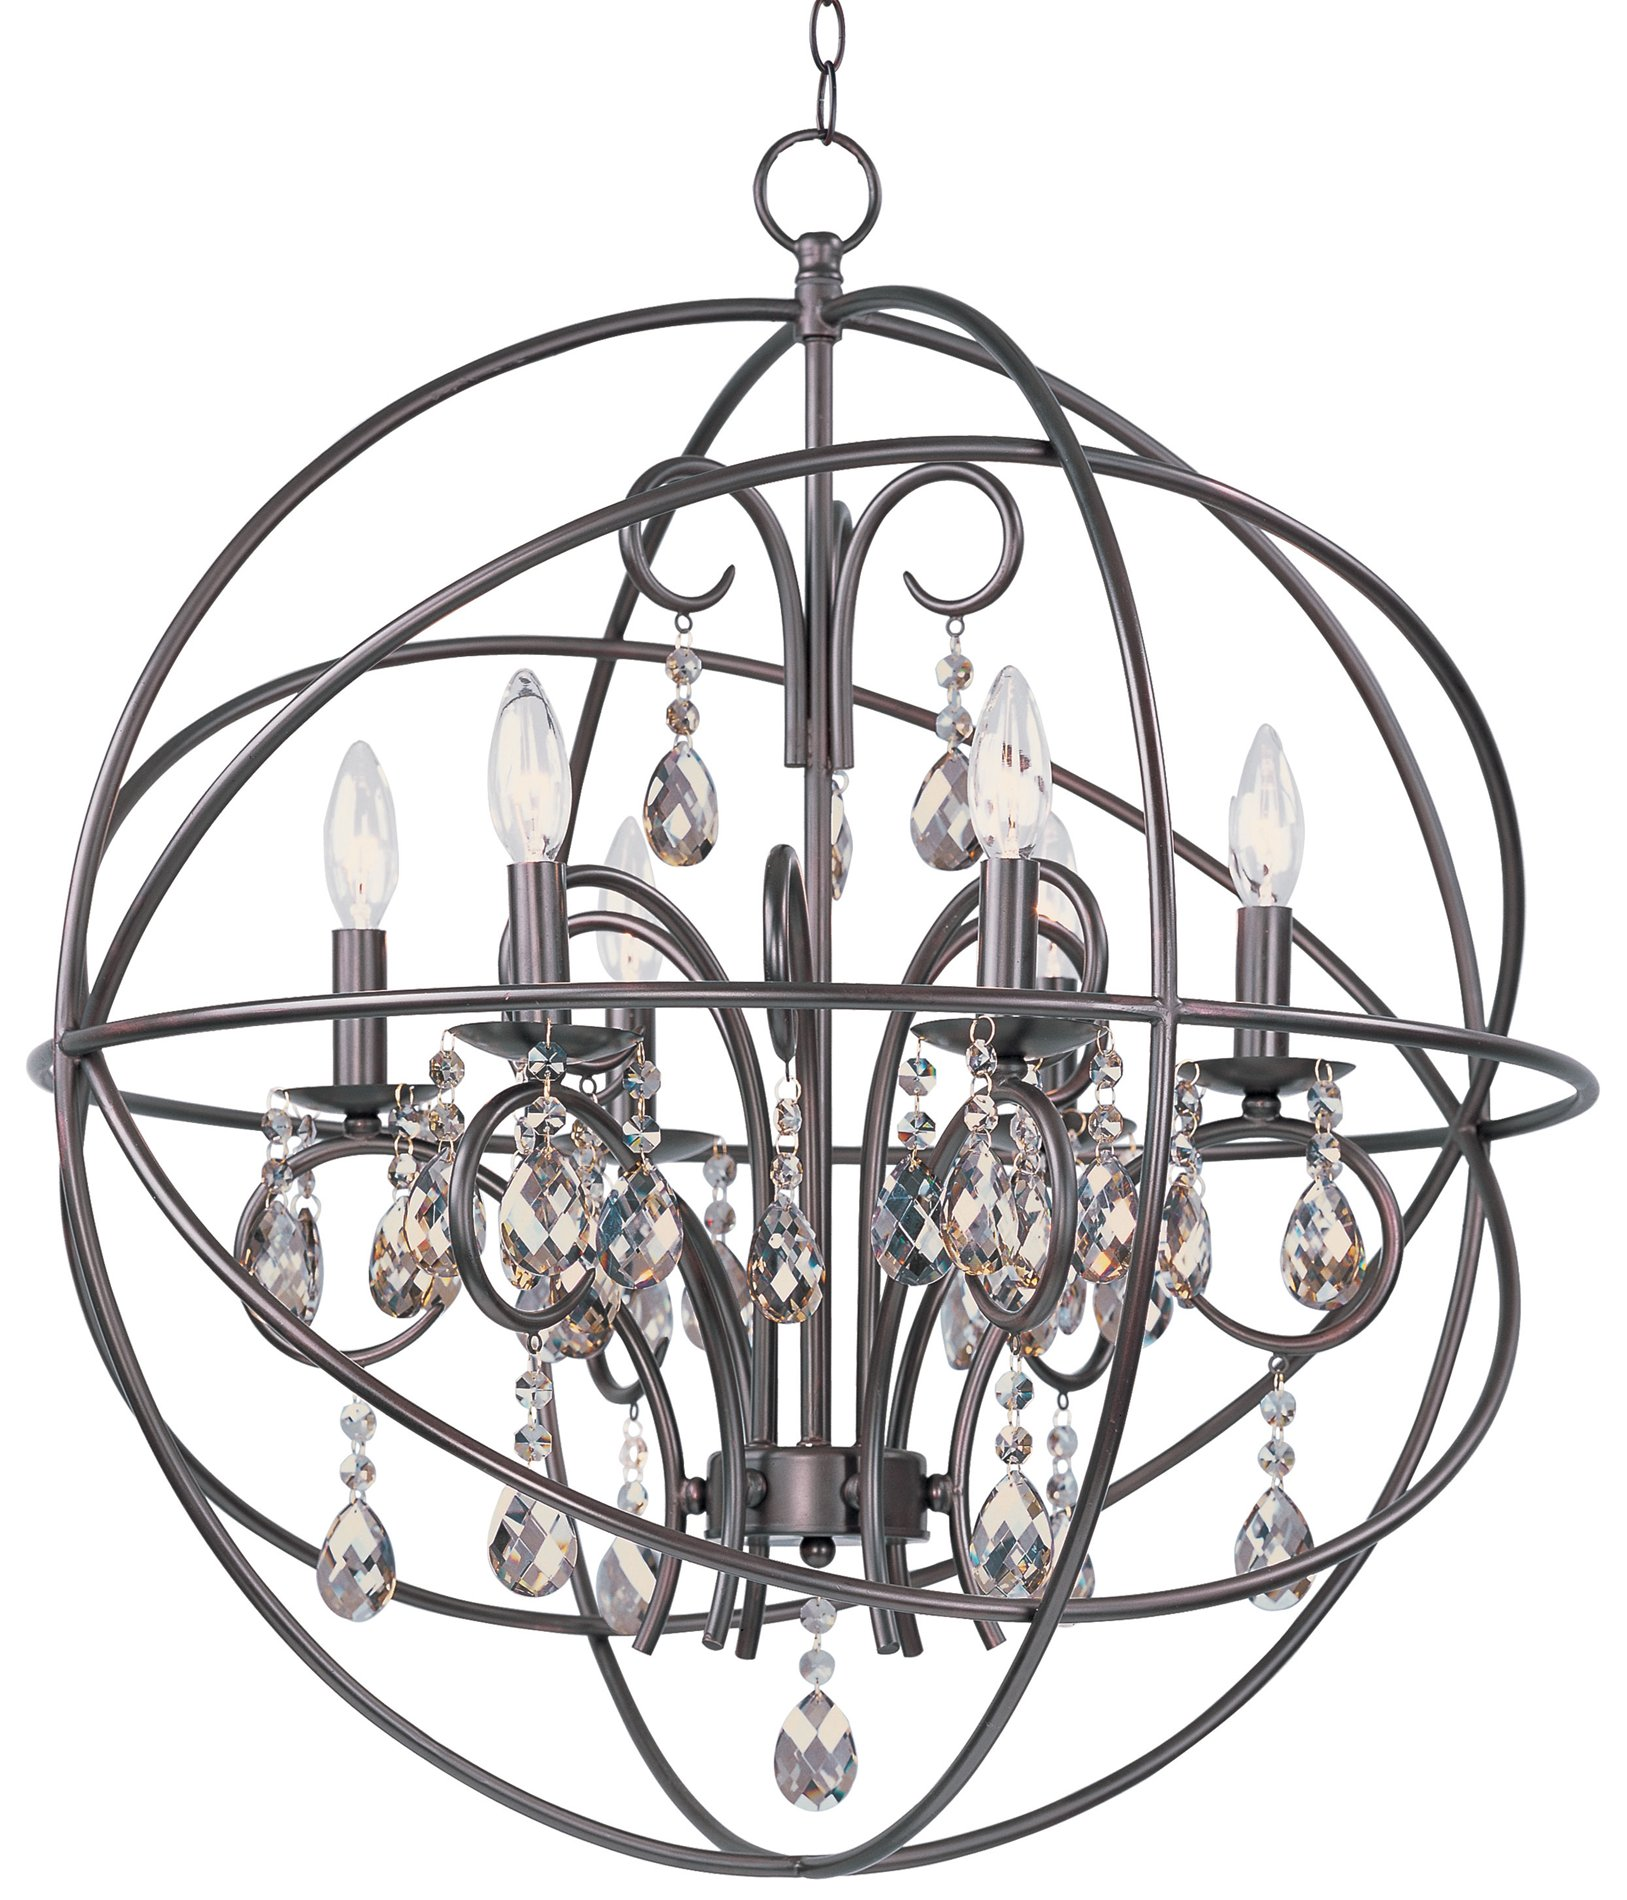 Maxim Lighting Oi Orbit Transitional Chandelier Mx